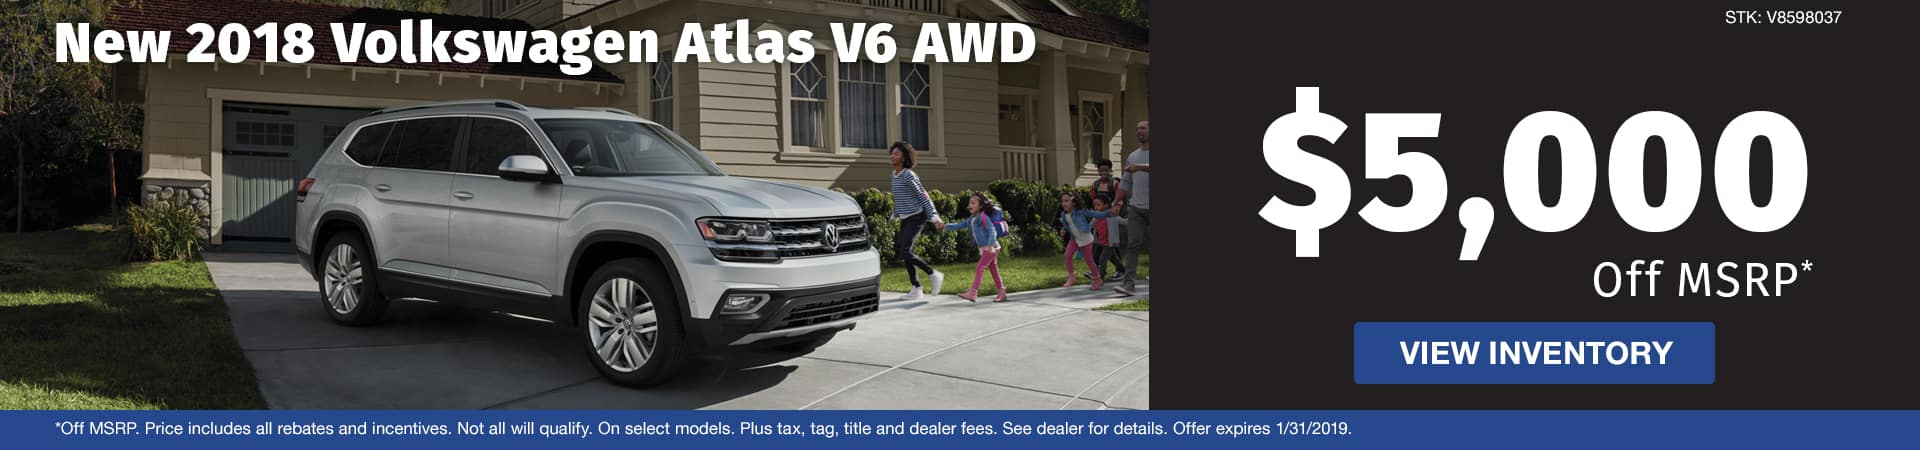 Save $5,000 off a new 2018 Volkswagen Atlas V6 with AWD in Murfreesboro TN